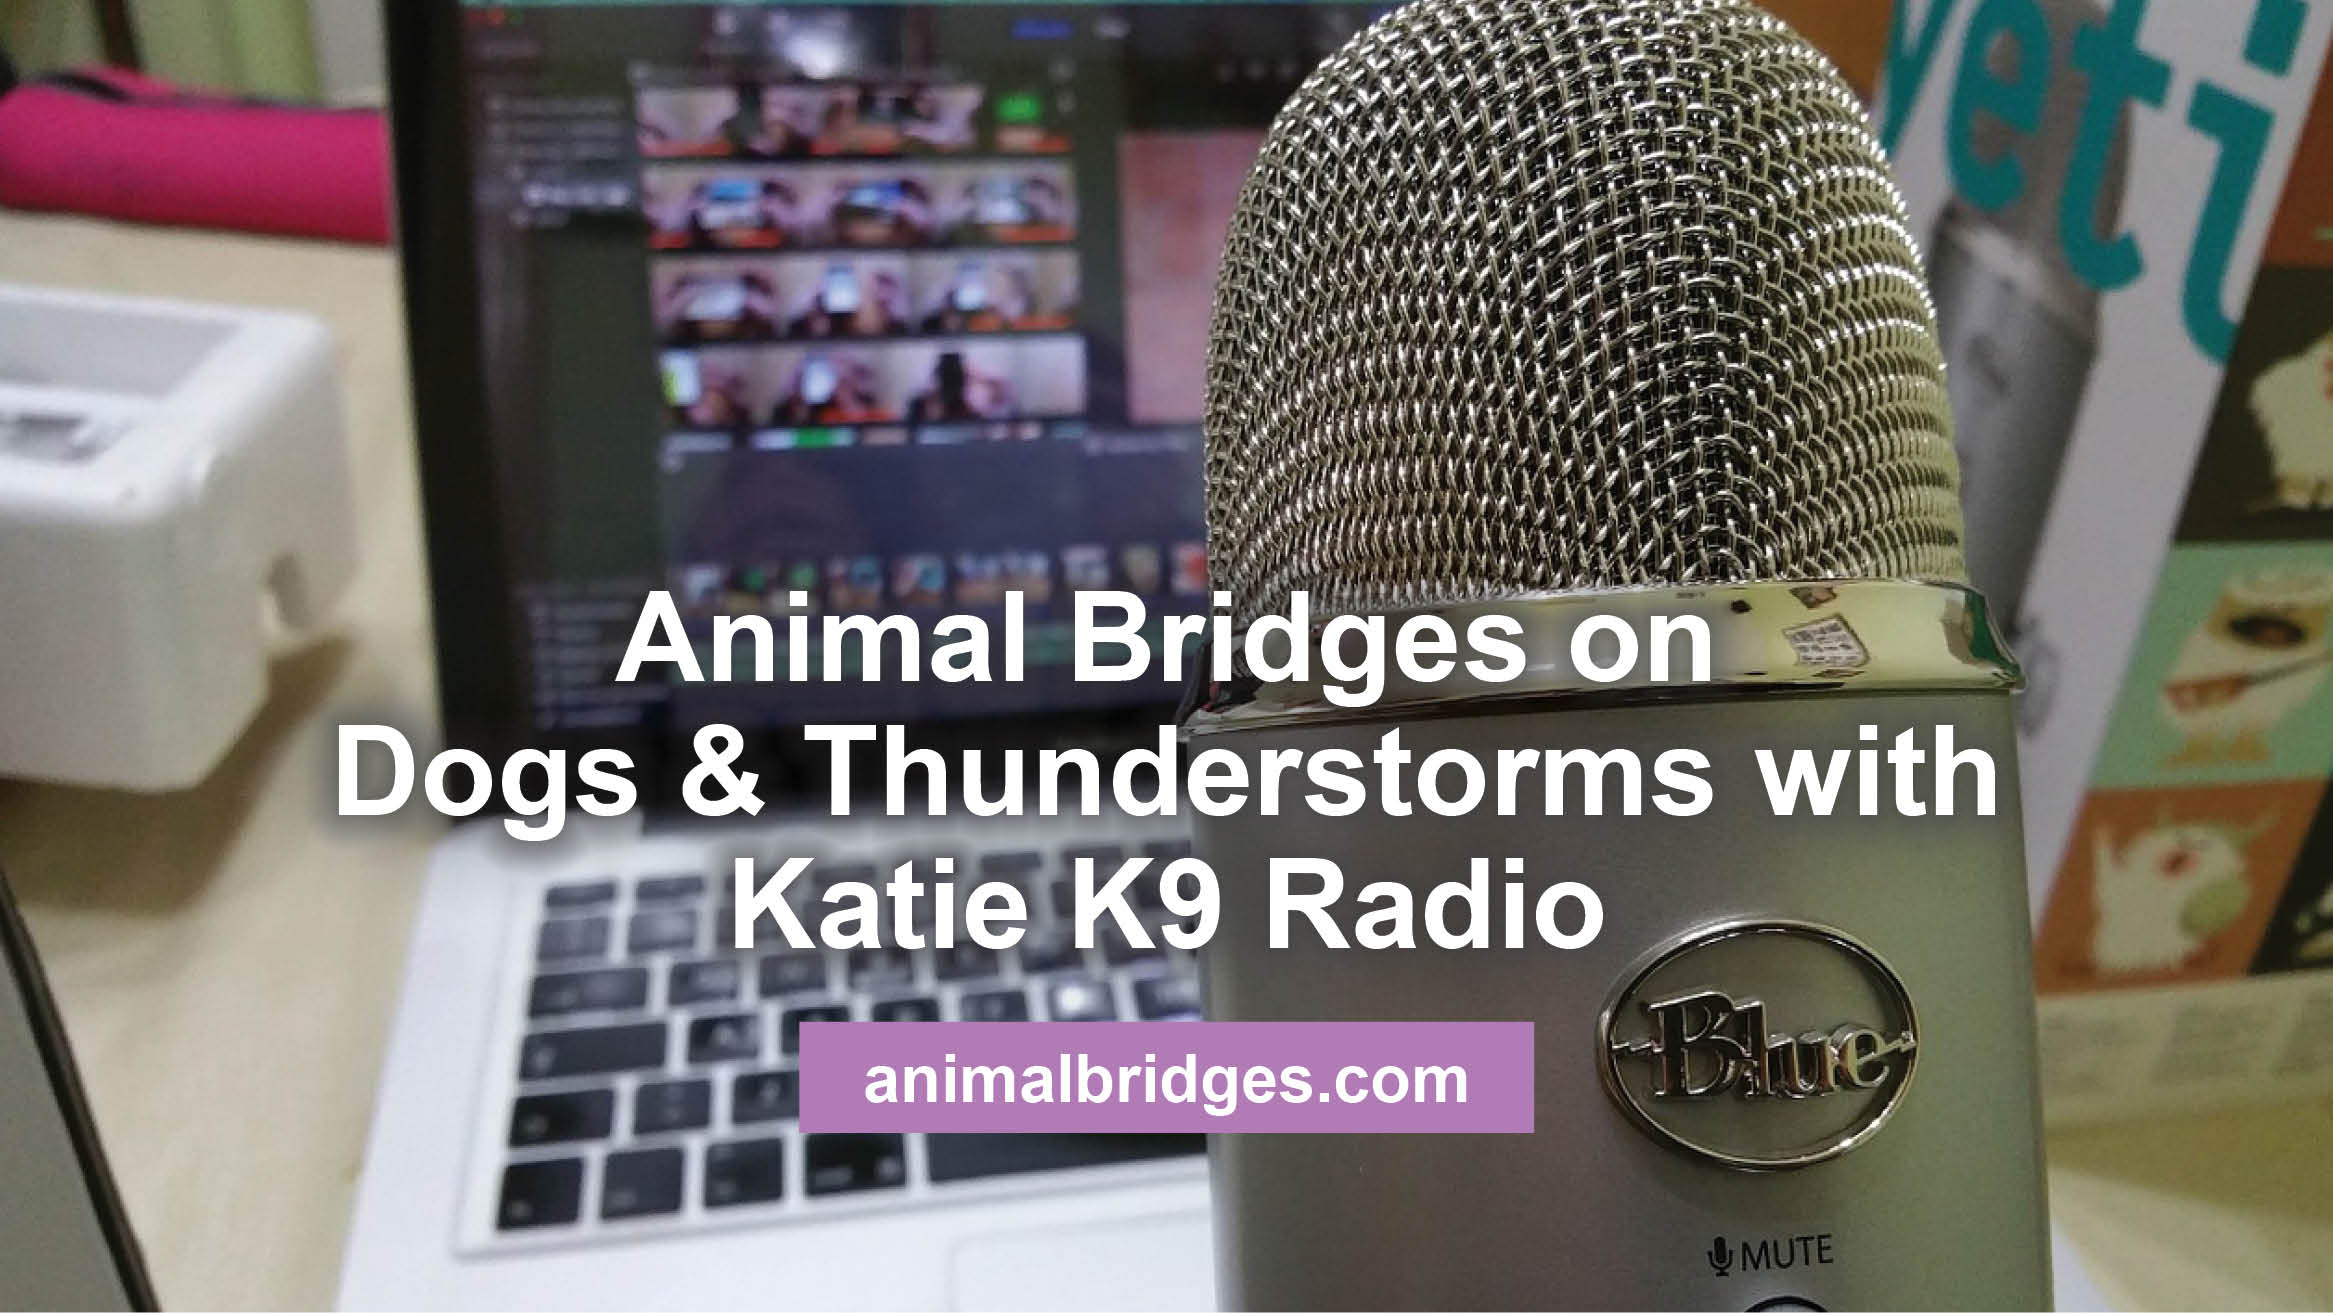 Animal Bridges on Dogs & Thunderstorms with Katie K9 Radio